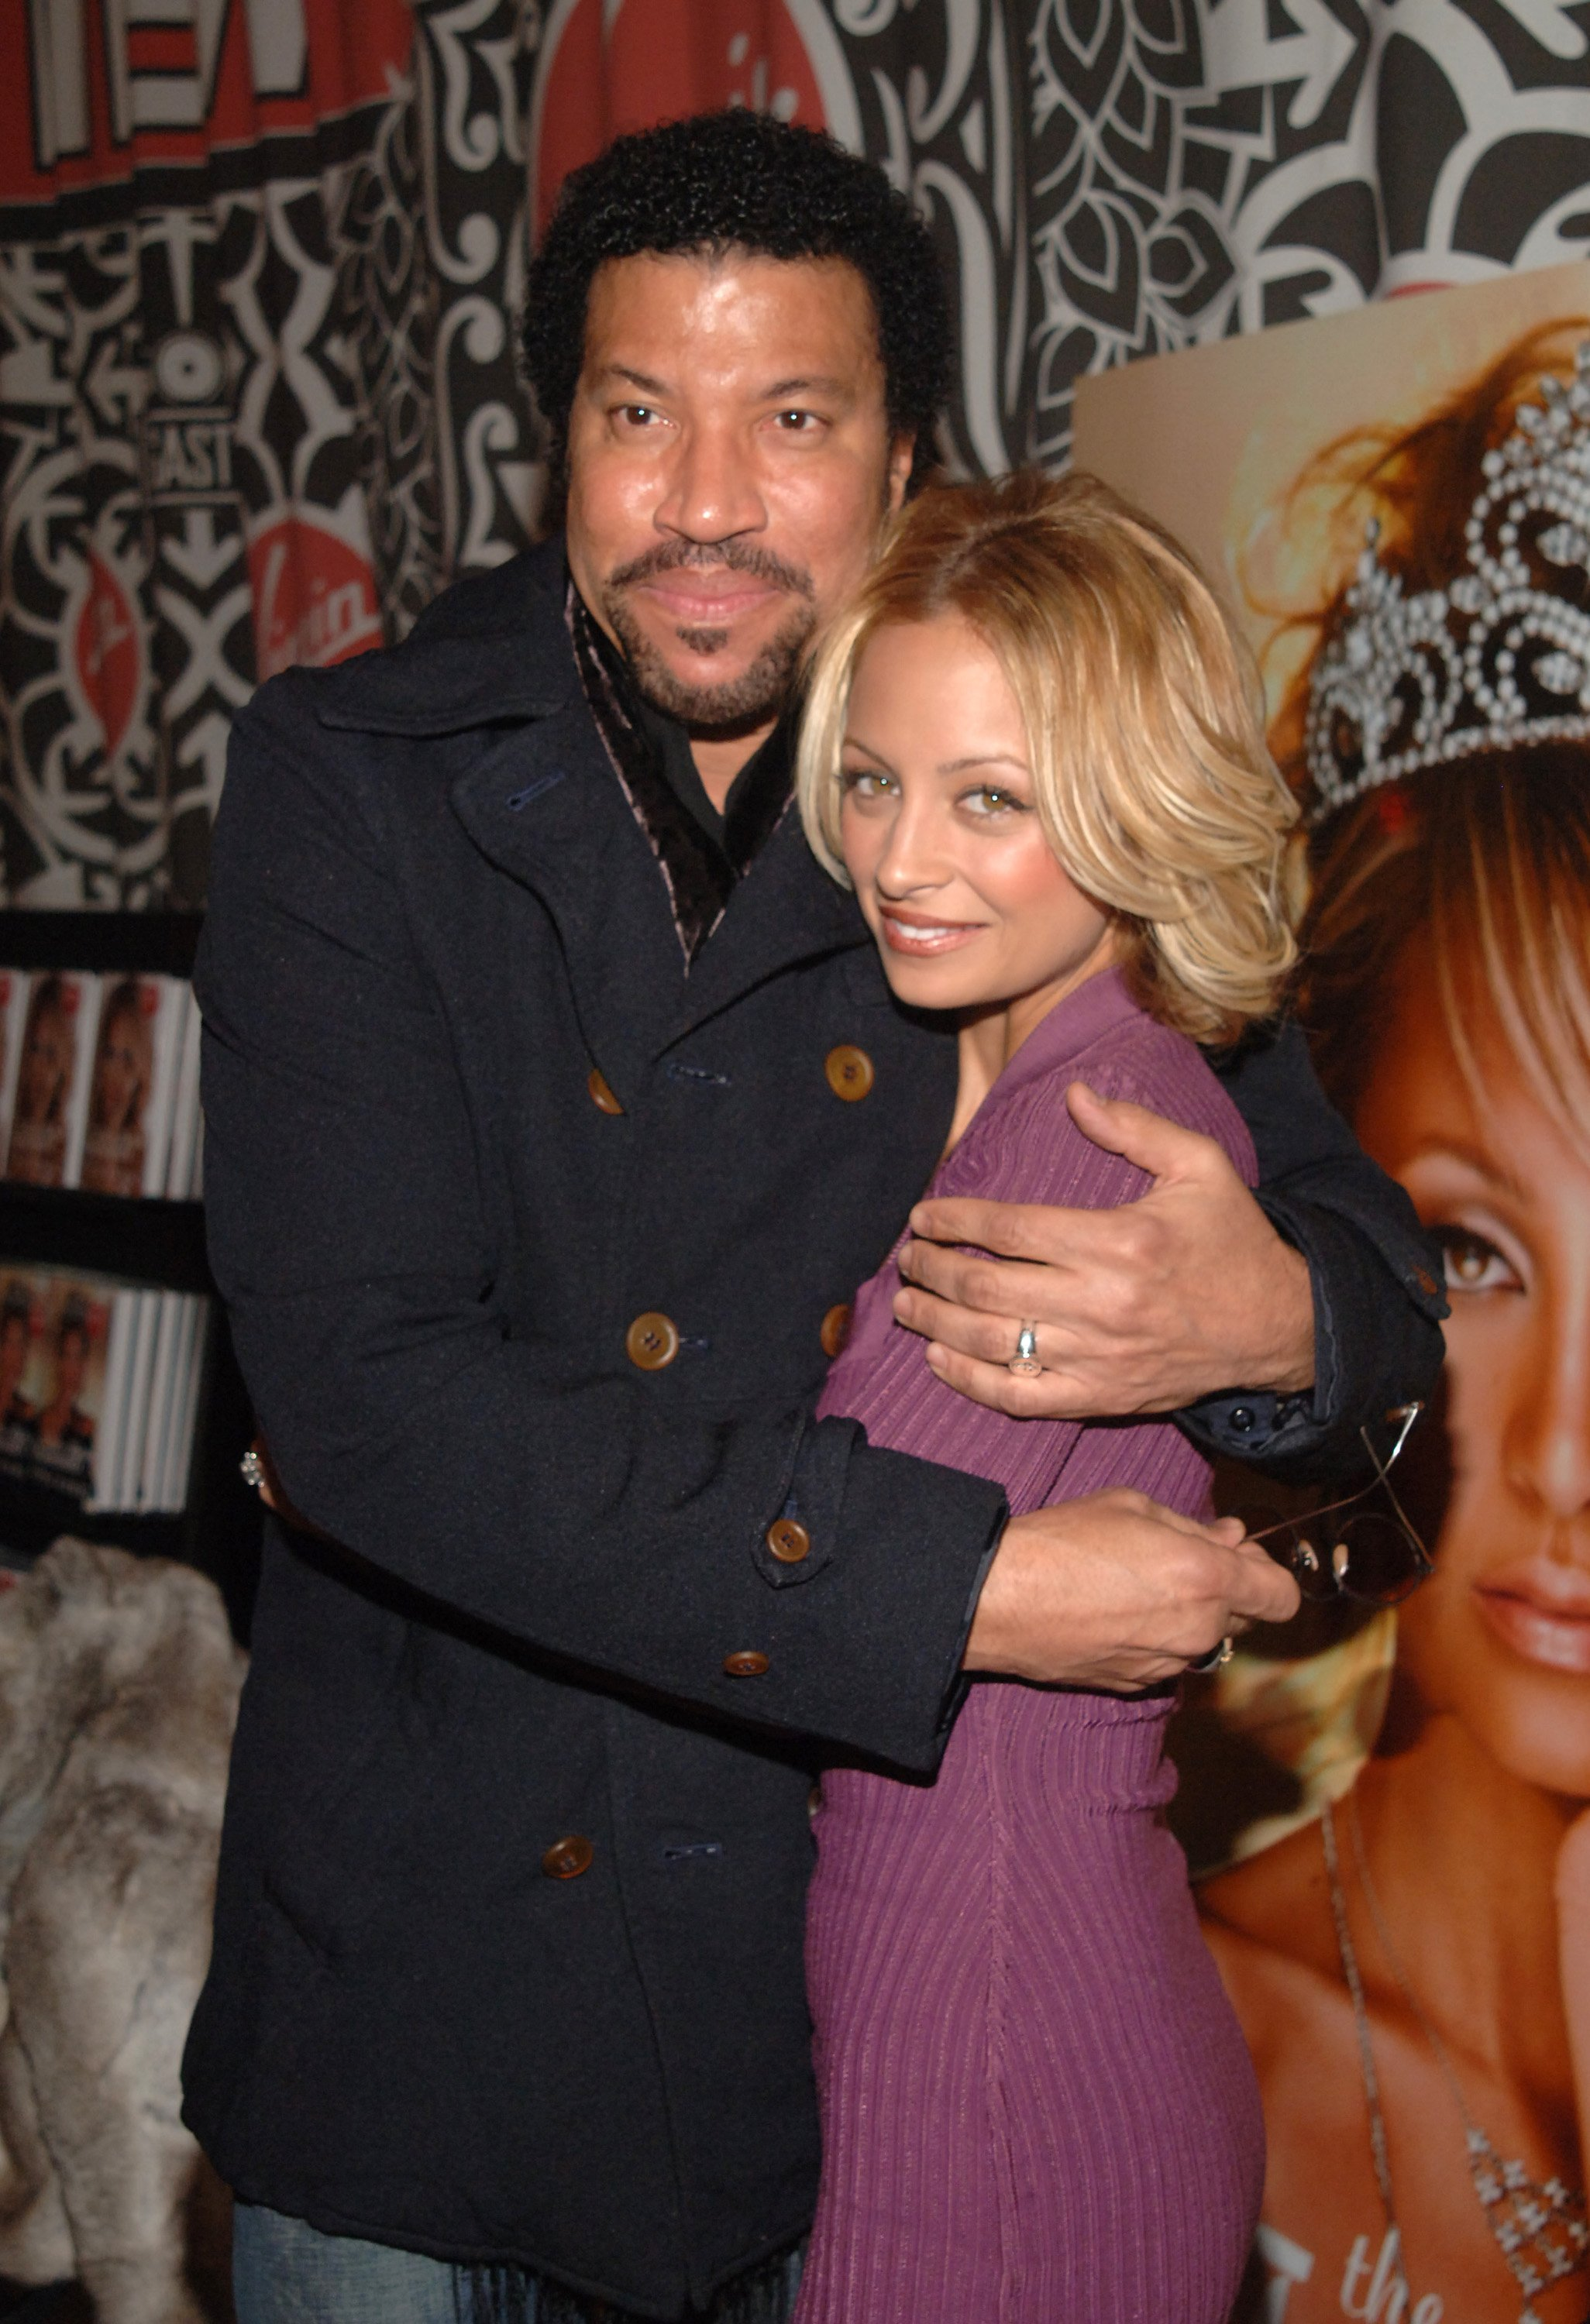 Lionel Richie and Nicole Richie at the 'The Truth About Diamonds' book signing at the Virgin Mega Store in Times Square on November 10, 2005 in New York City. | Photo: GettyImages/Global Images of Ukraine